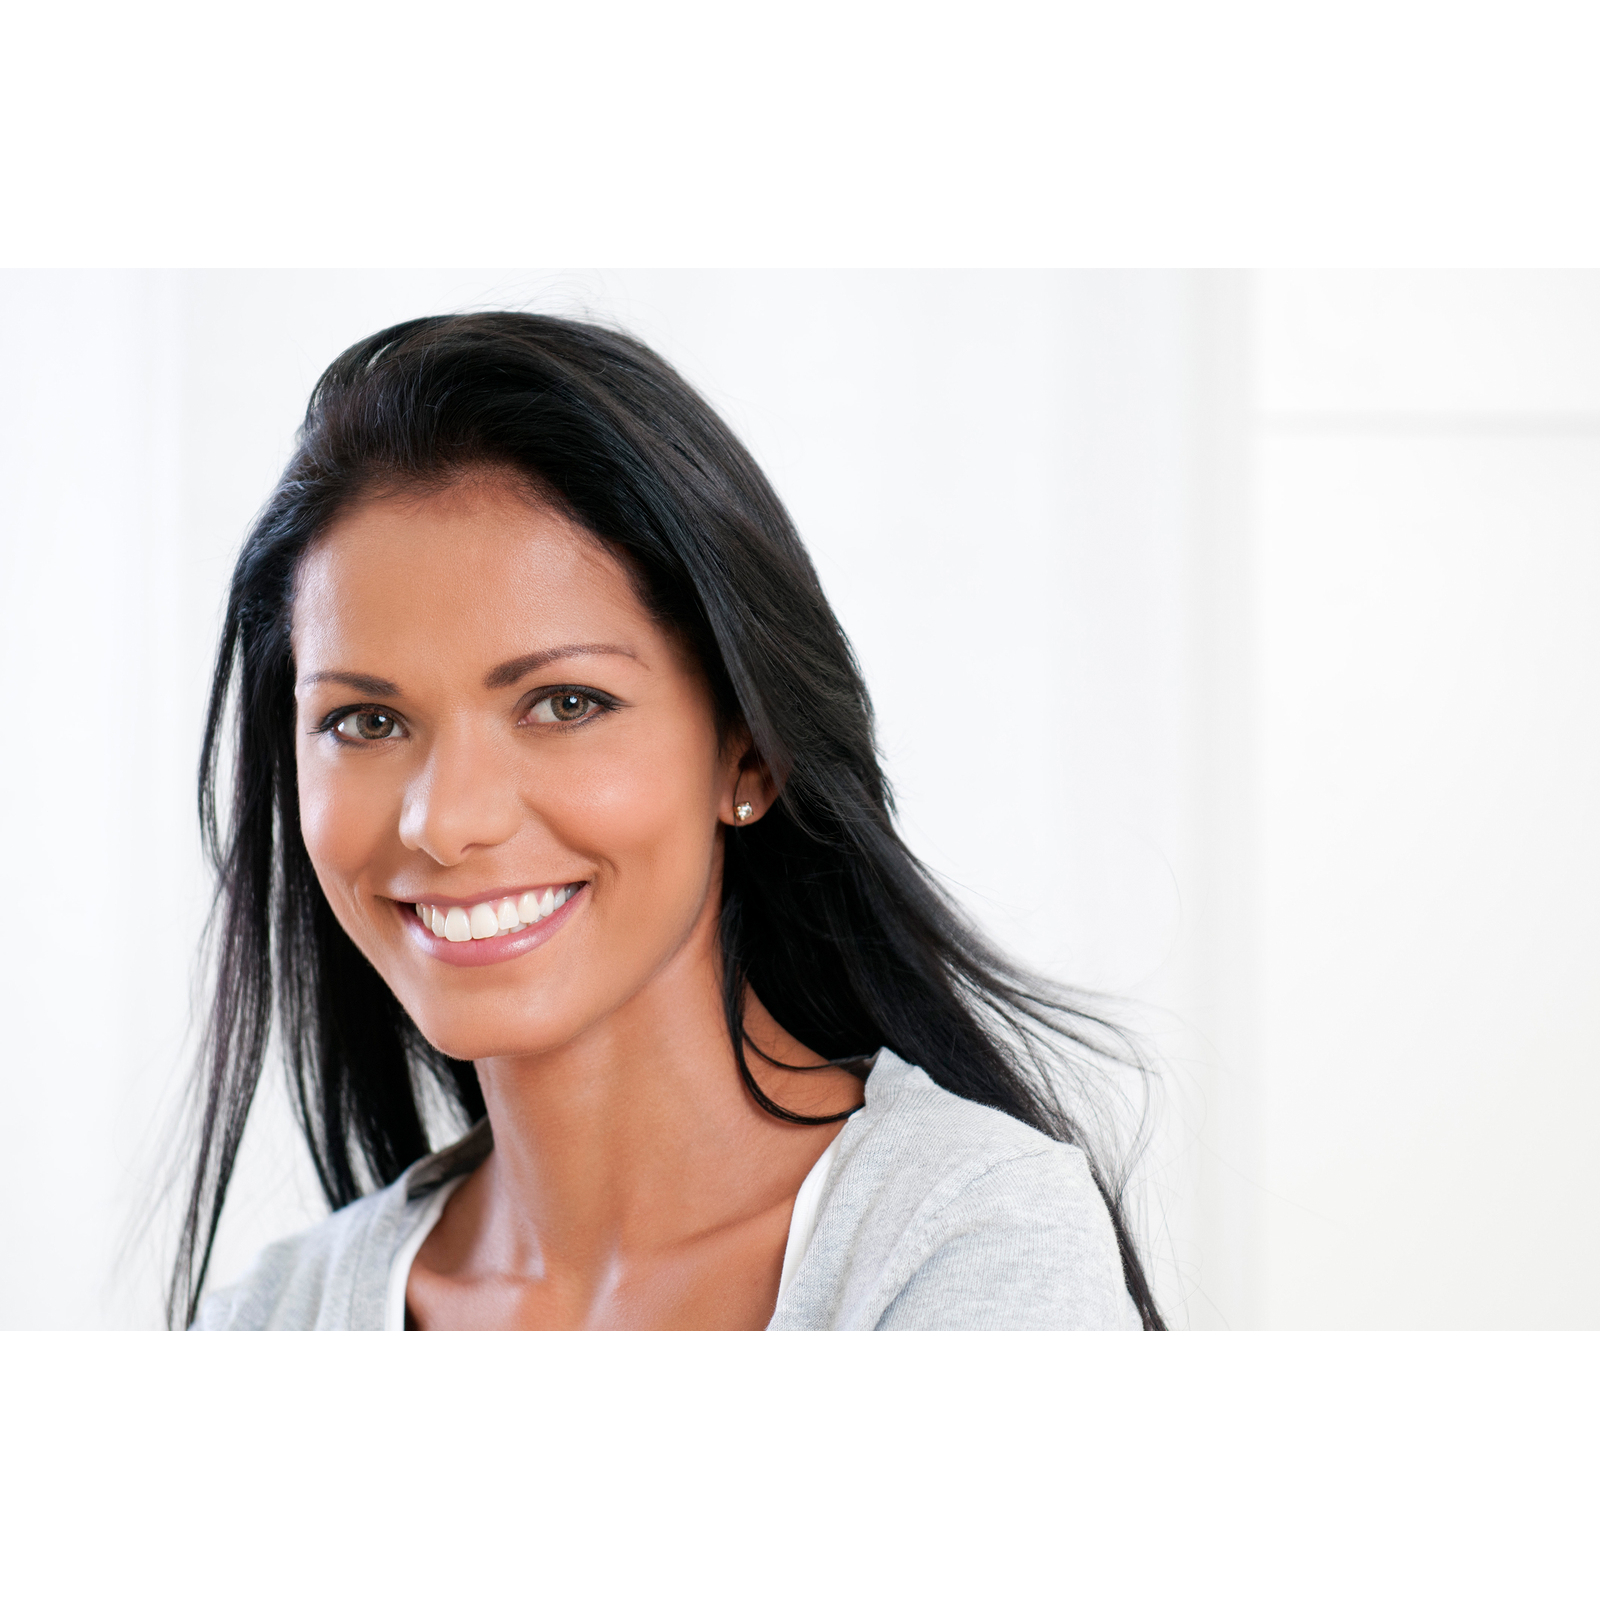 The Center for Plastic Surgery Northern Michigan